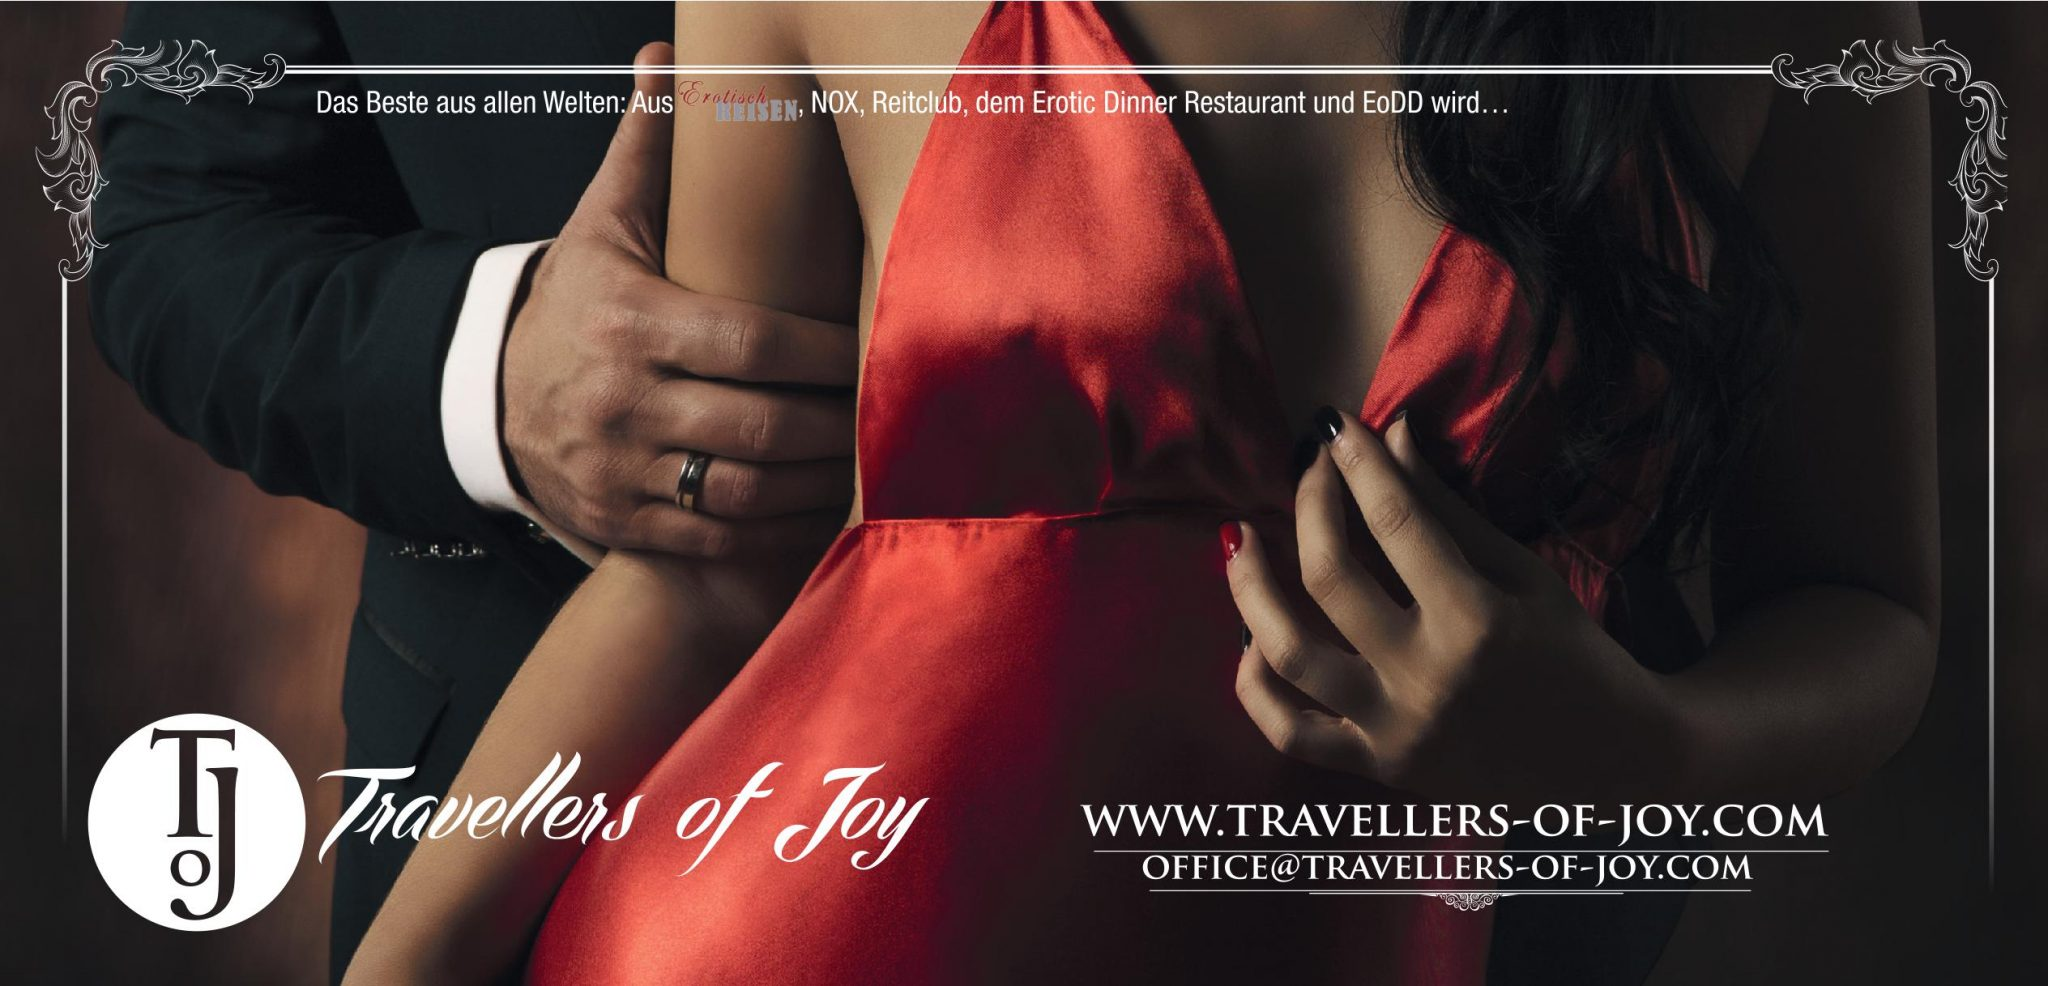 Travellers of Joy – Erotisch Reisen